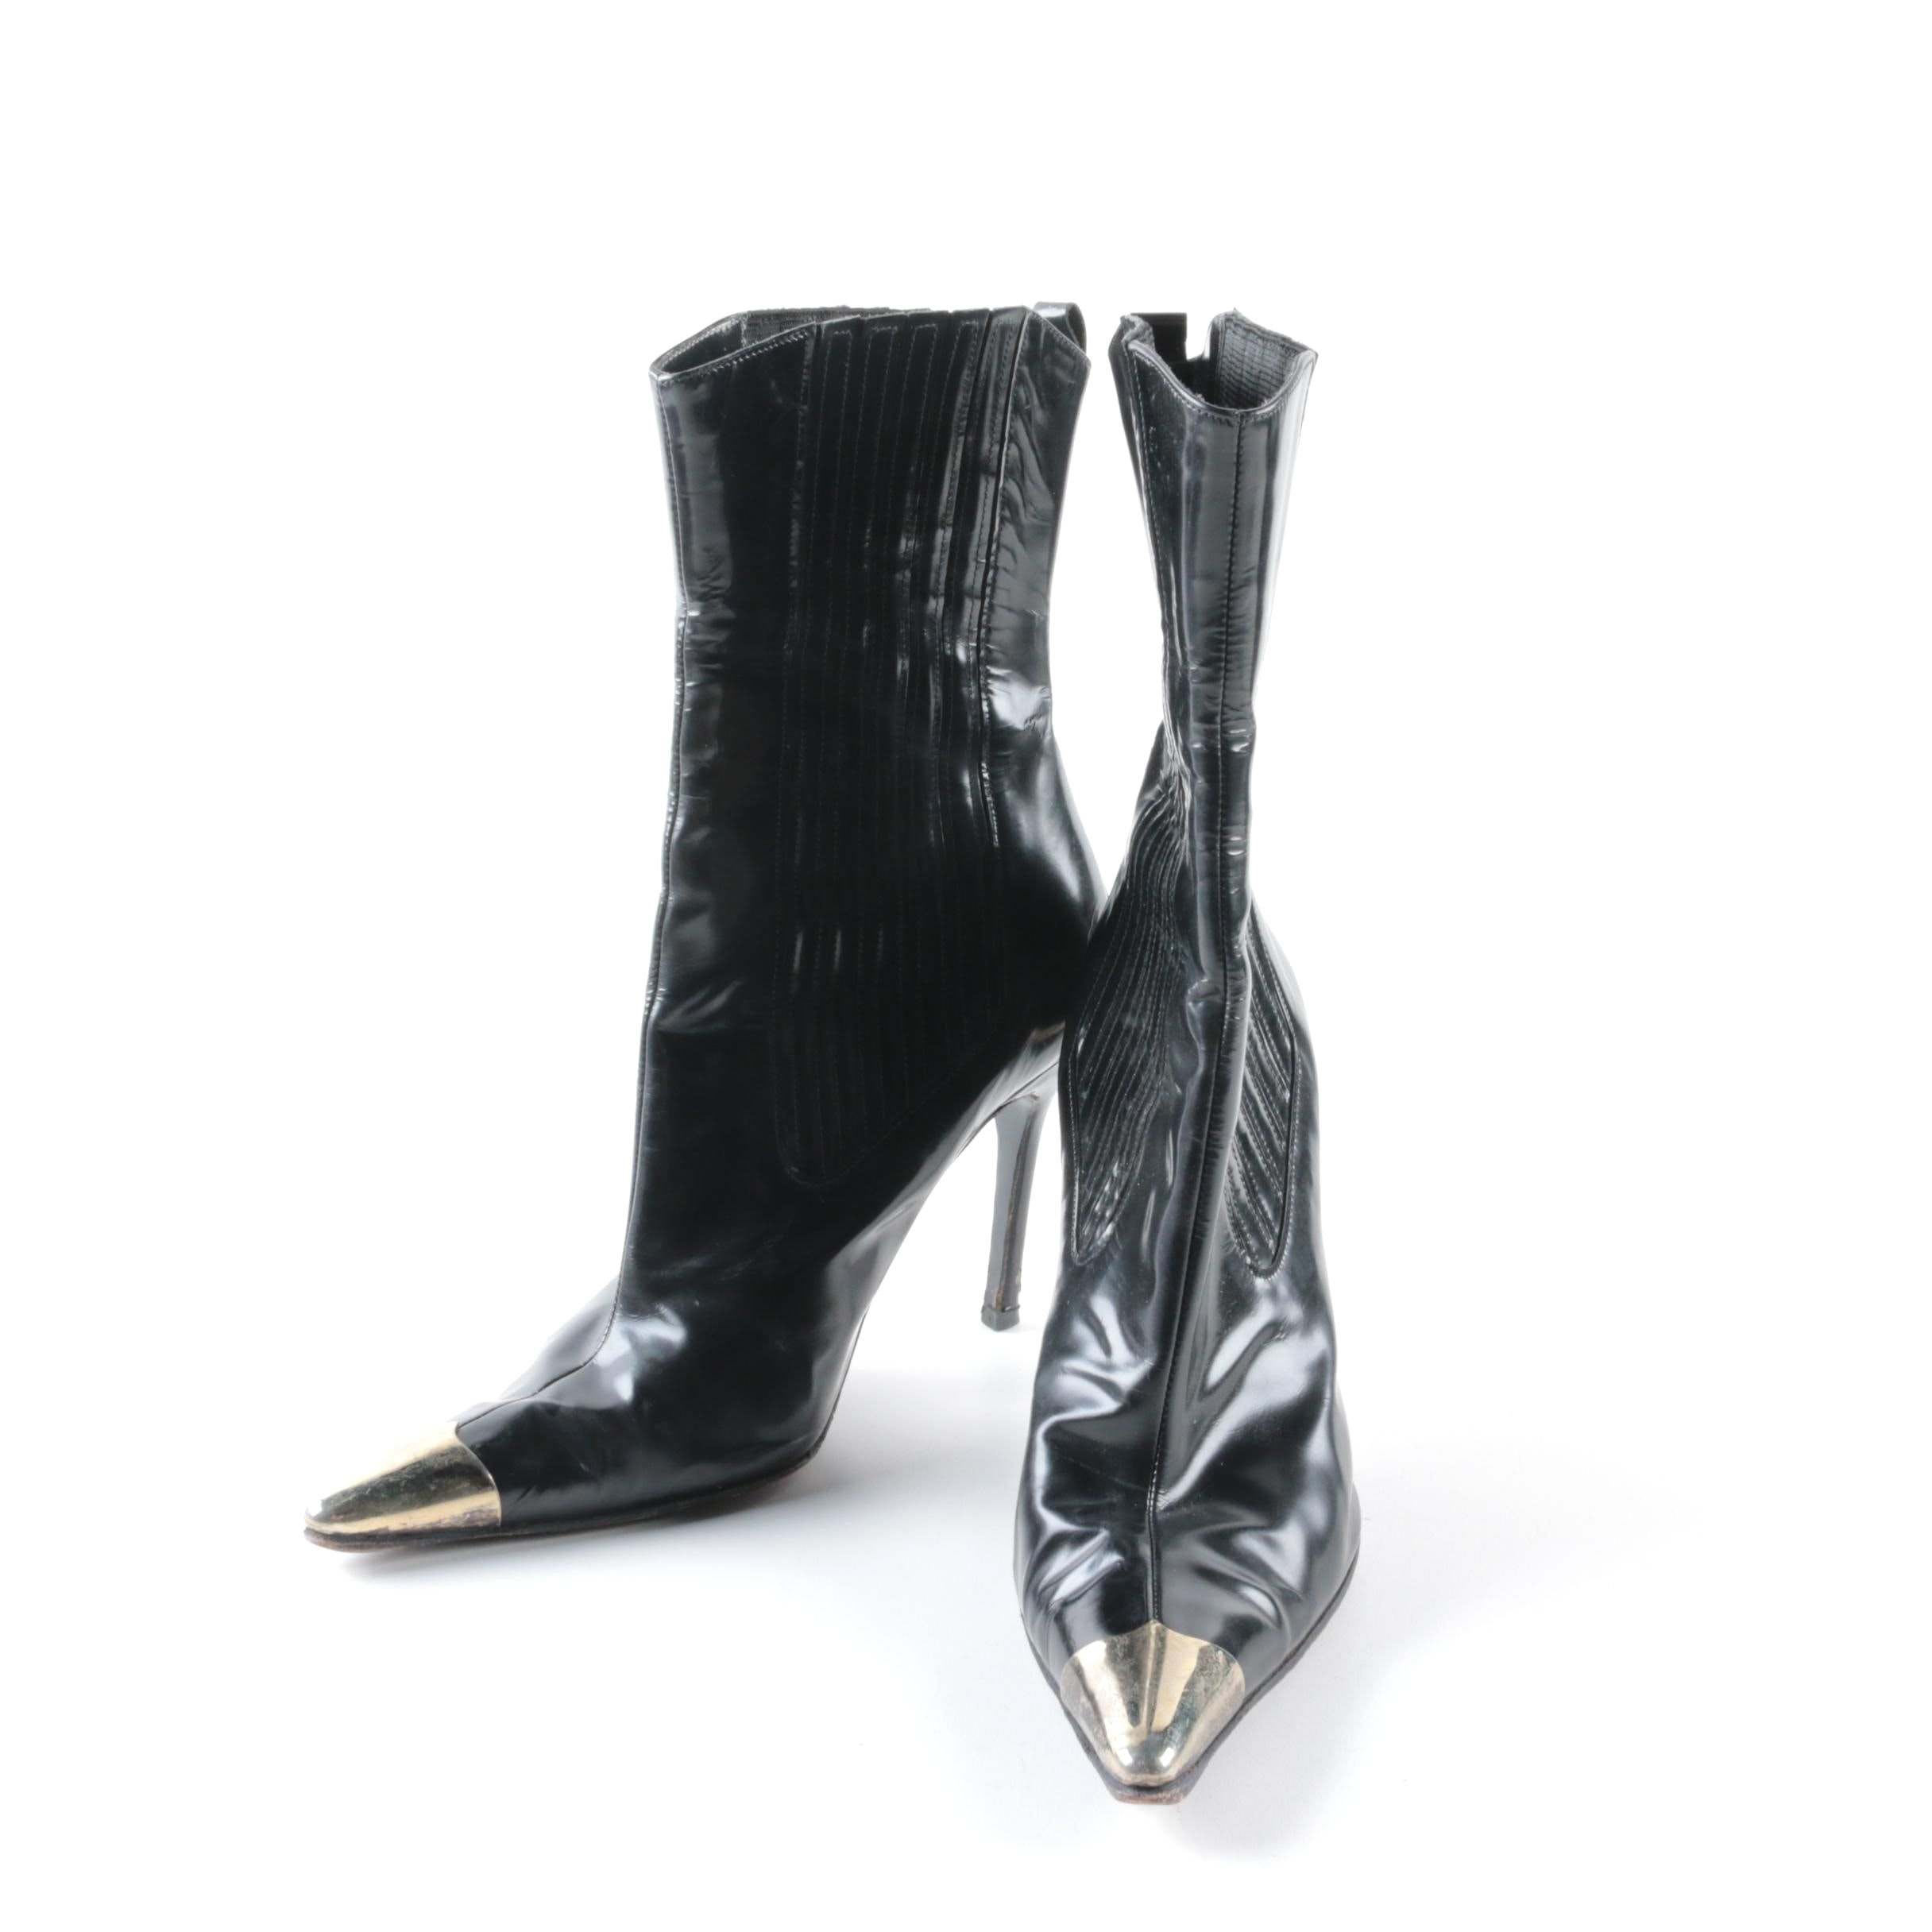 Dolce & Gabbana Black Leather High Heeled Ankle Boots